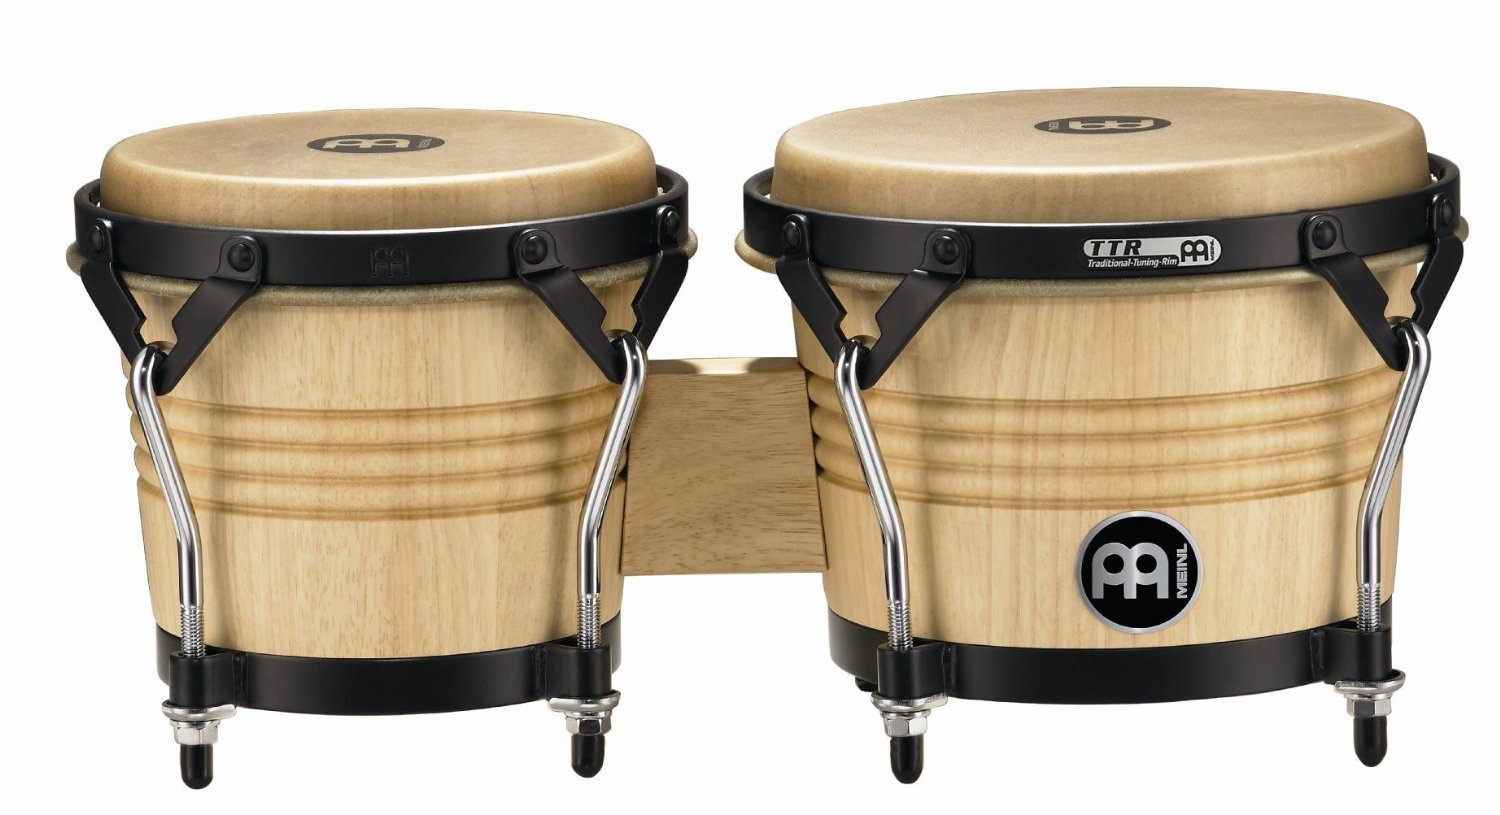 Meinl Percussion LC300NT-M Artist Series Luis Conte Signature Wood Bongos, Natural, 6 3/4-Inch and 8-Inch